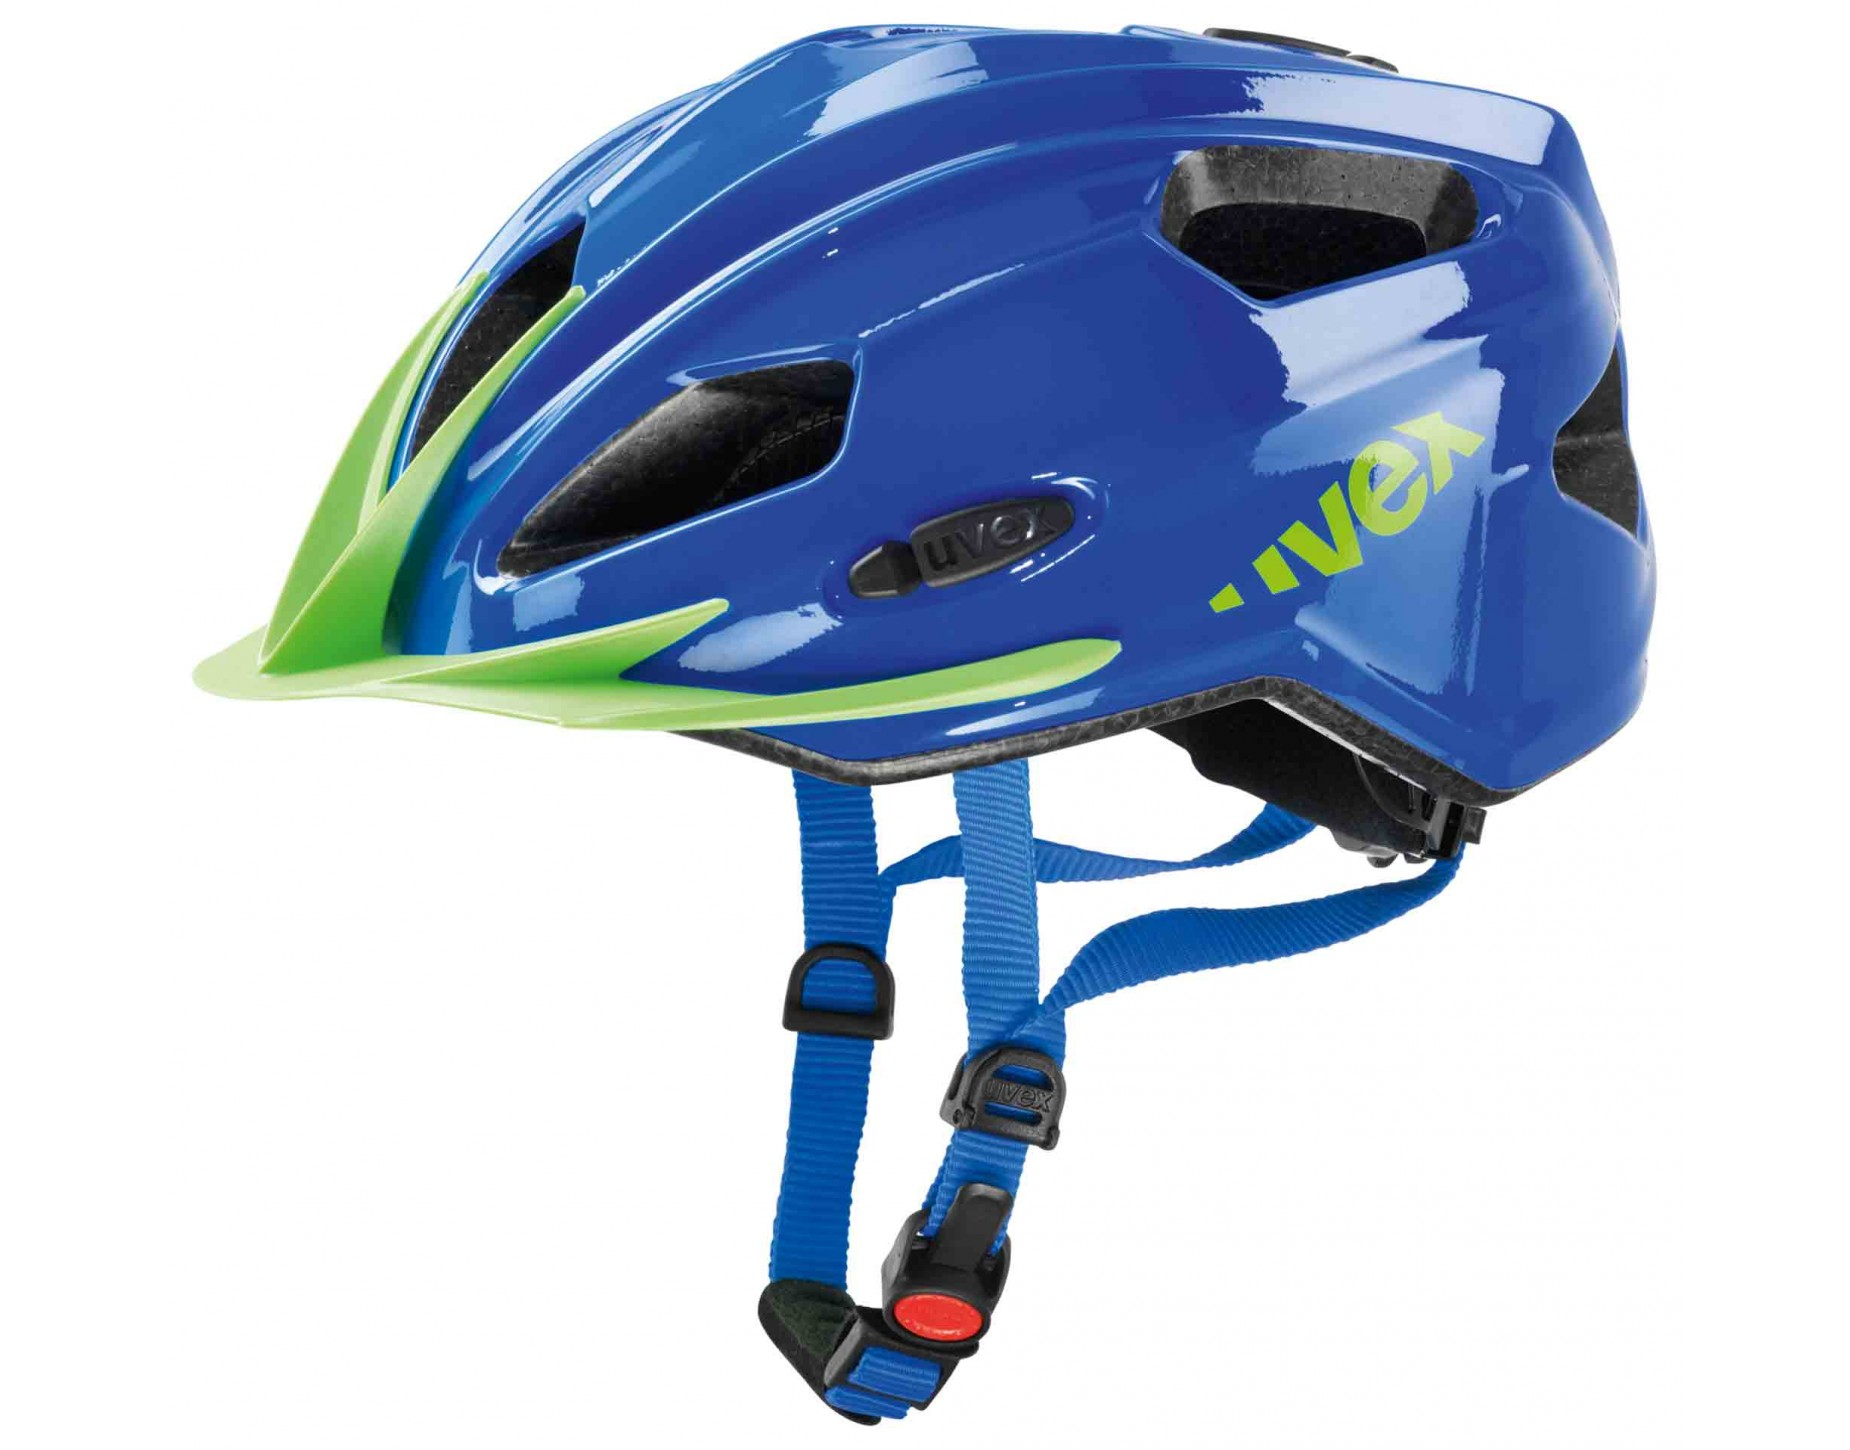 uvex quatro junior kids helmet blue green